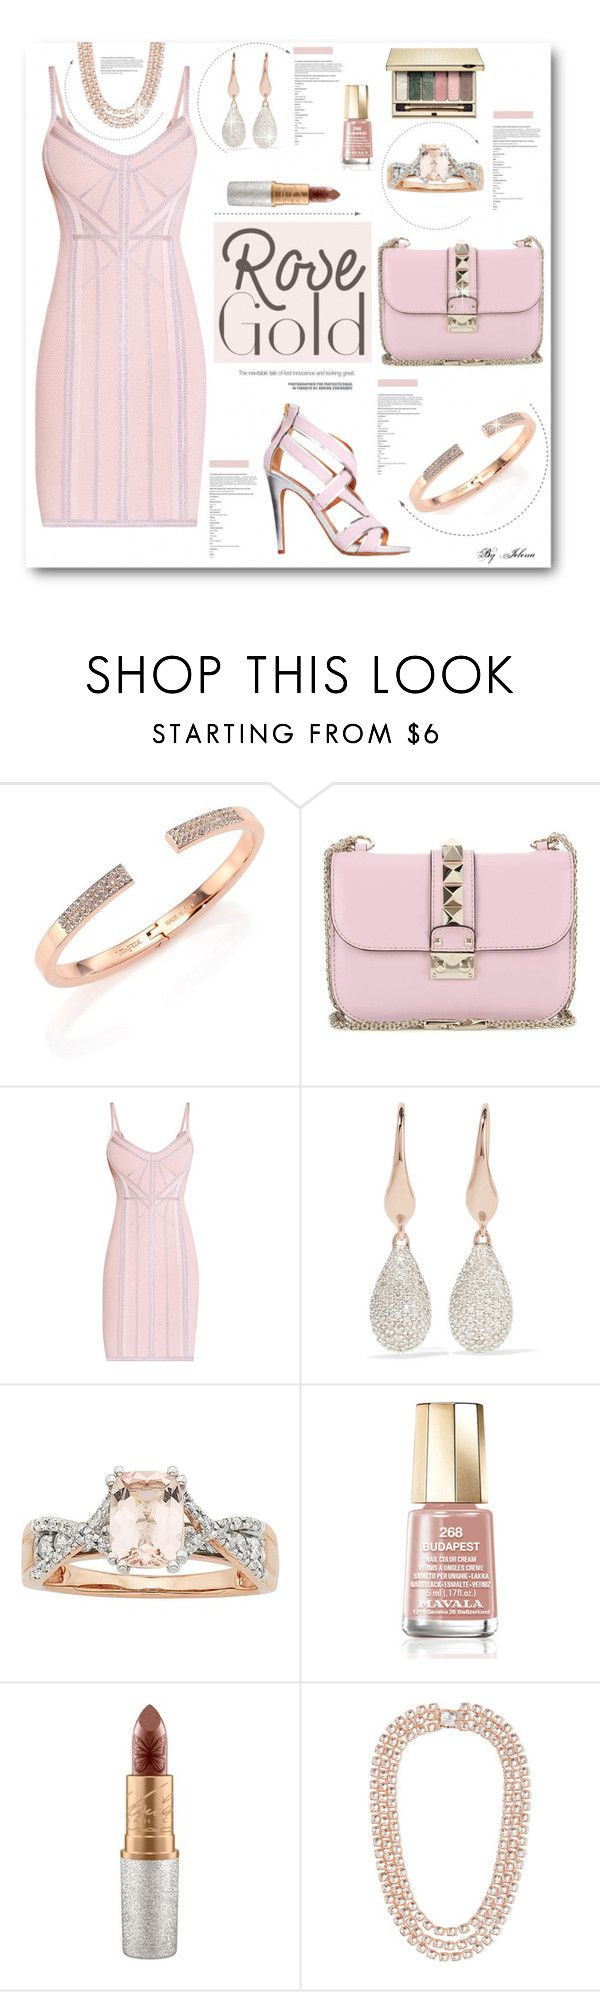 """So Pretty: Rose Gold Jewelry"" by jelenalazarevicpo ❤ liked on Polyvore featuring Vita Fede, Valentino, Hervé Léger, Monica Vinader, Mavala, MAC Cosmetics and Larkspur & Hawk"